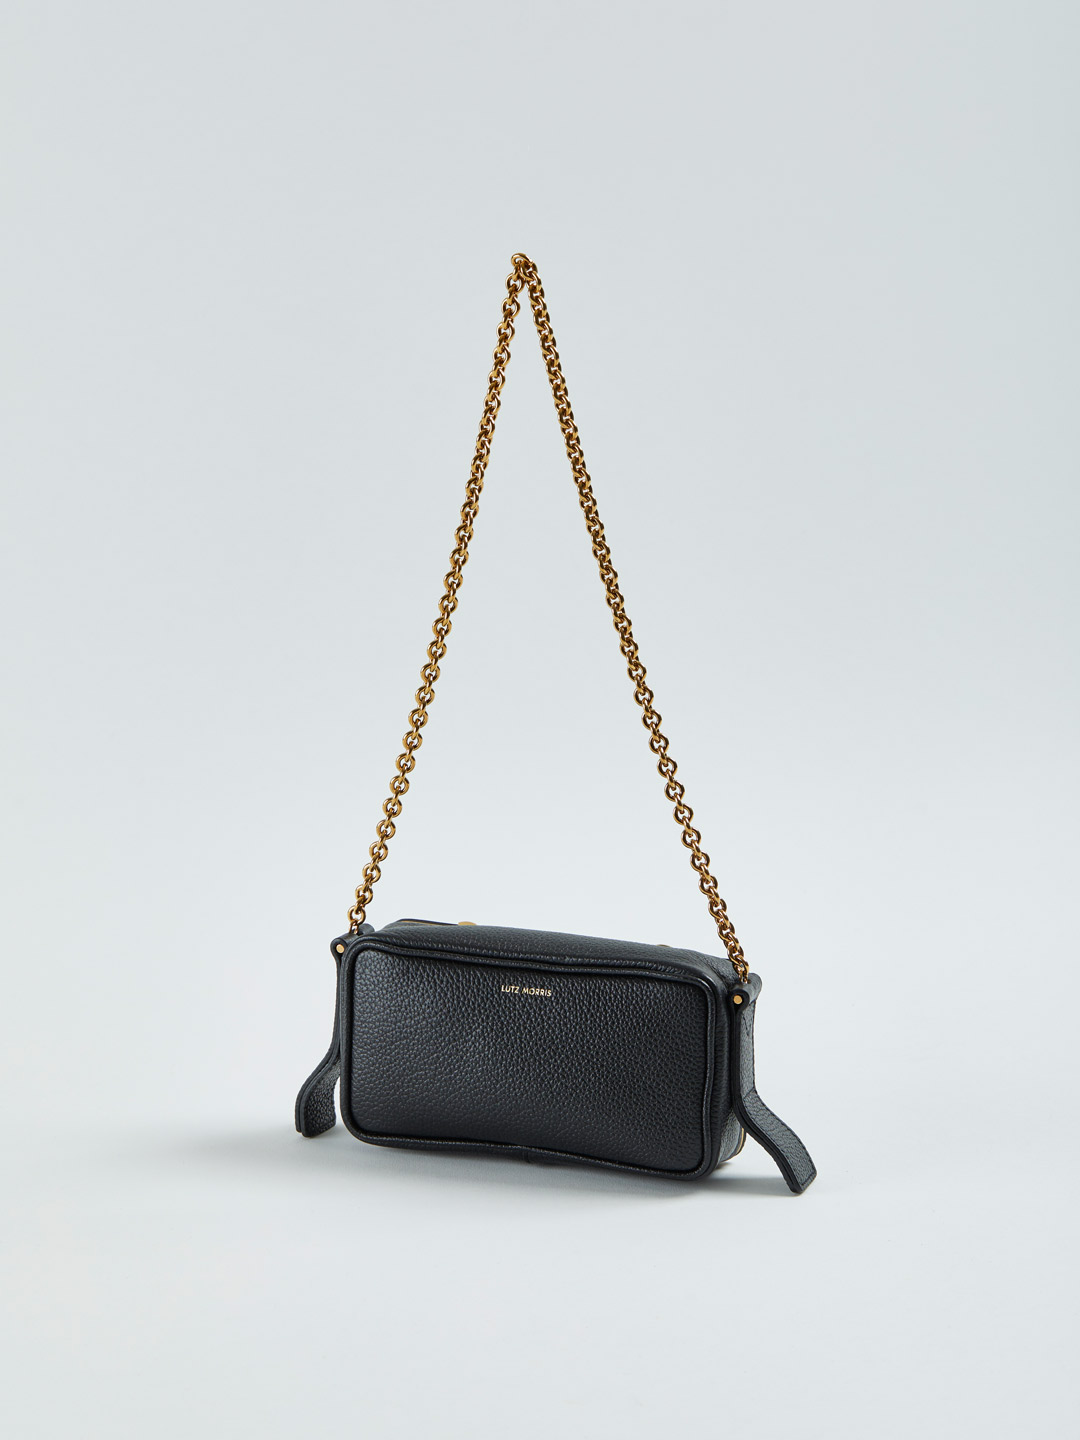 Elise Small Shoulder Chain Bag - Black